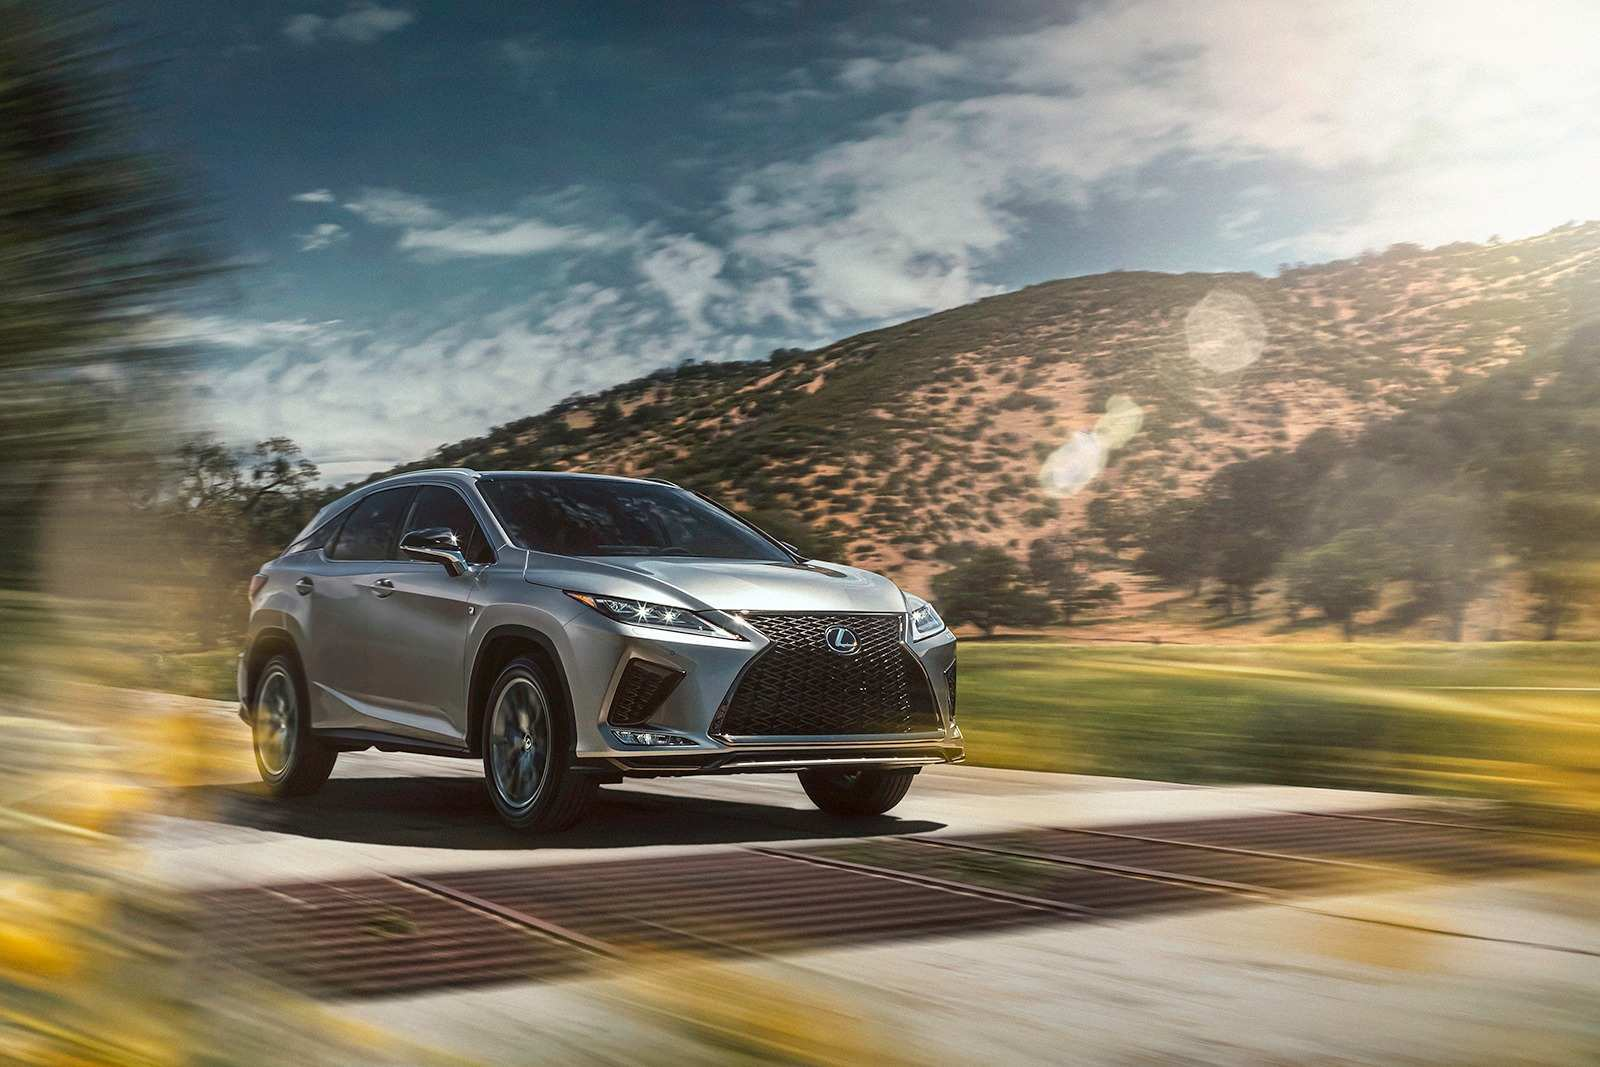 50 Gallery of Lexus Rx 350 Year 2020 Spy Shoot with Lexus Rx 350 Year 2020